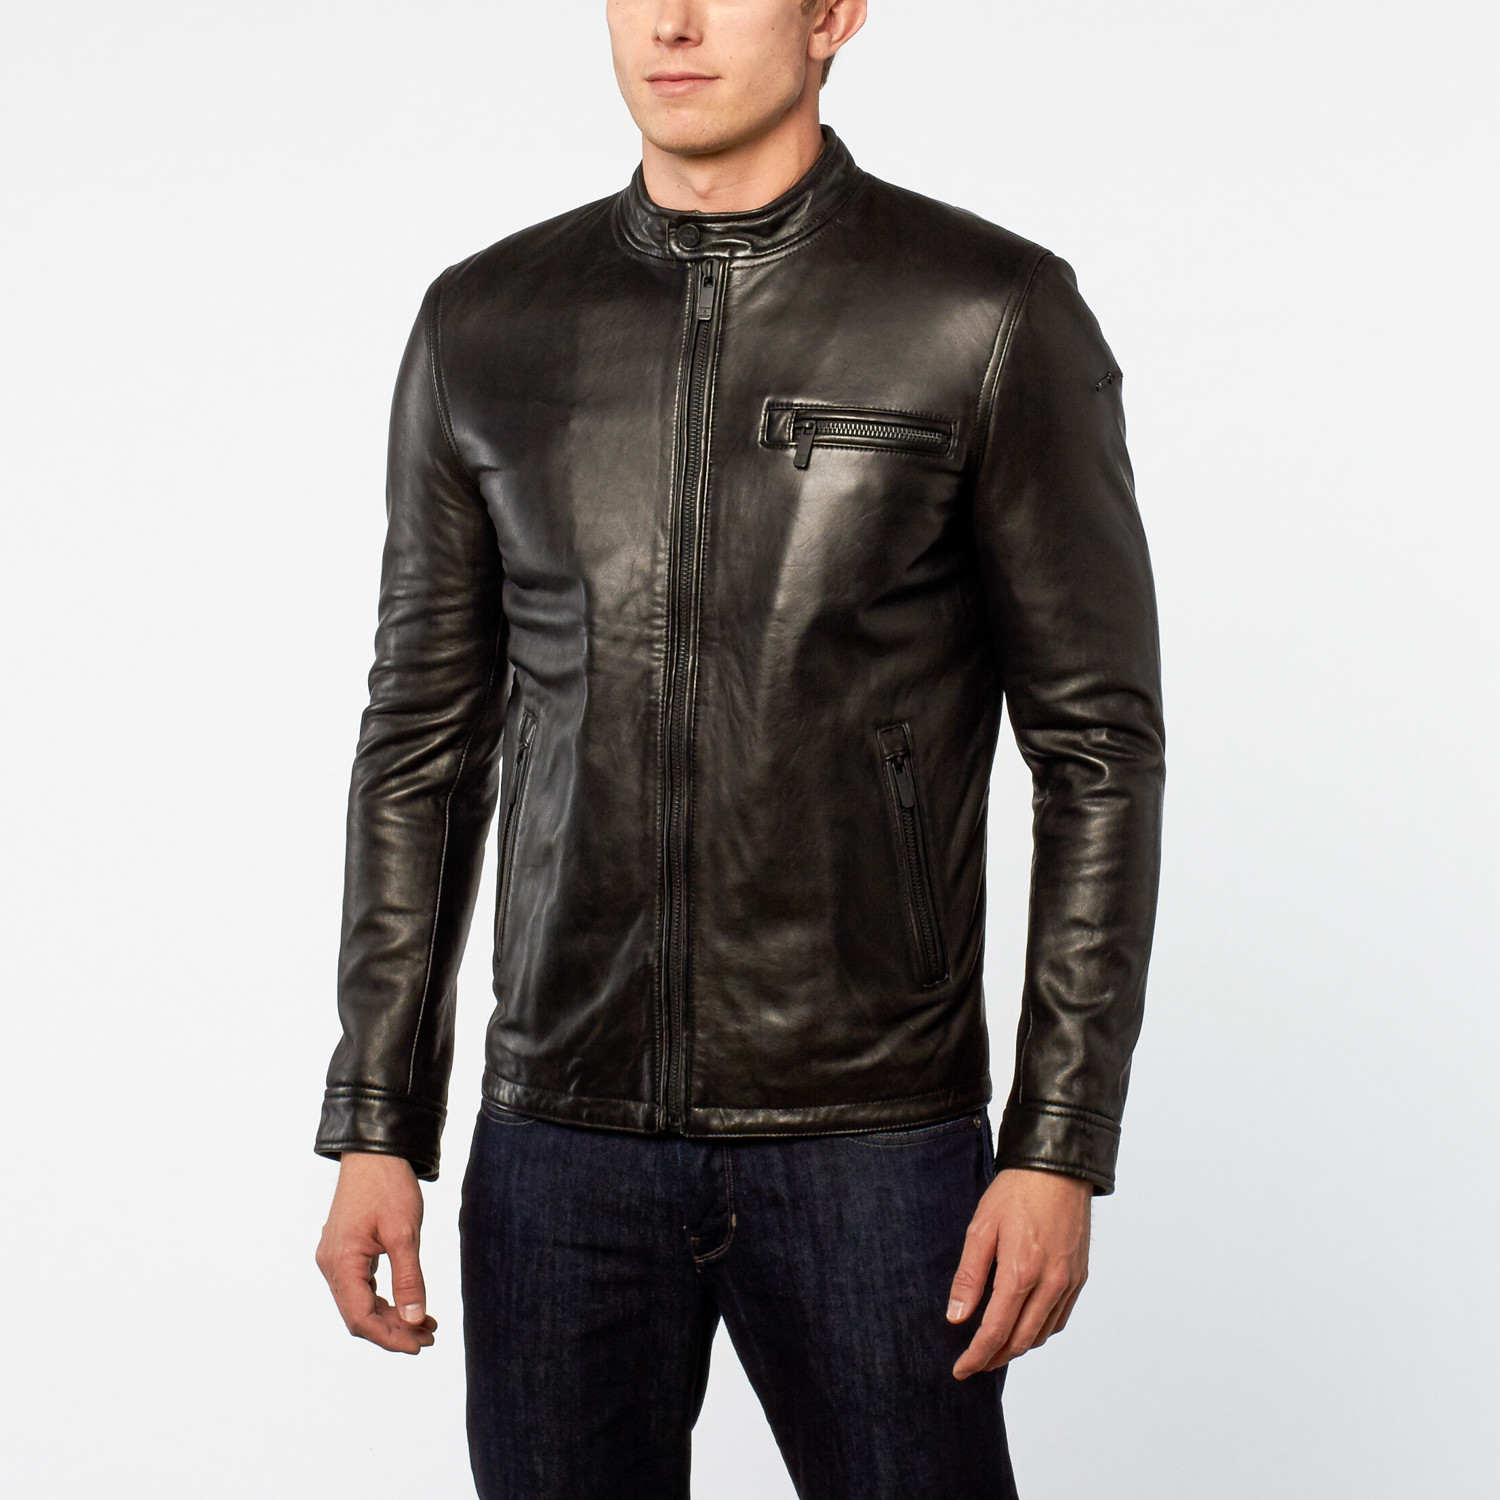 English Leather Jackets - Heirloom Leather Pieces - Touch of Modern